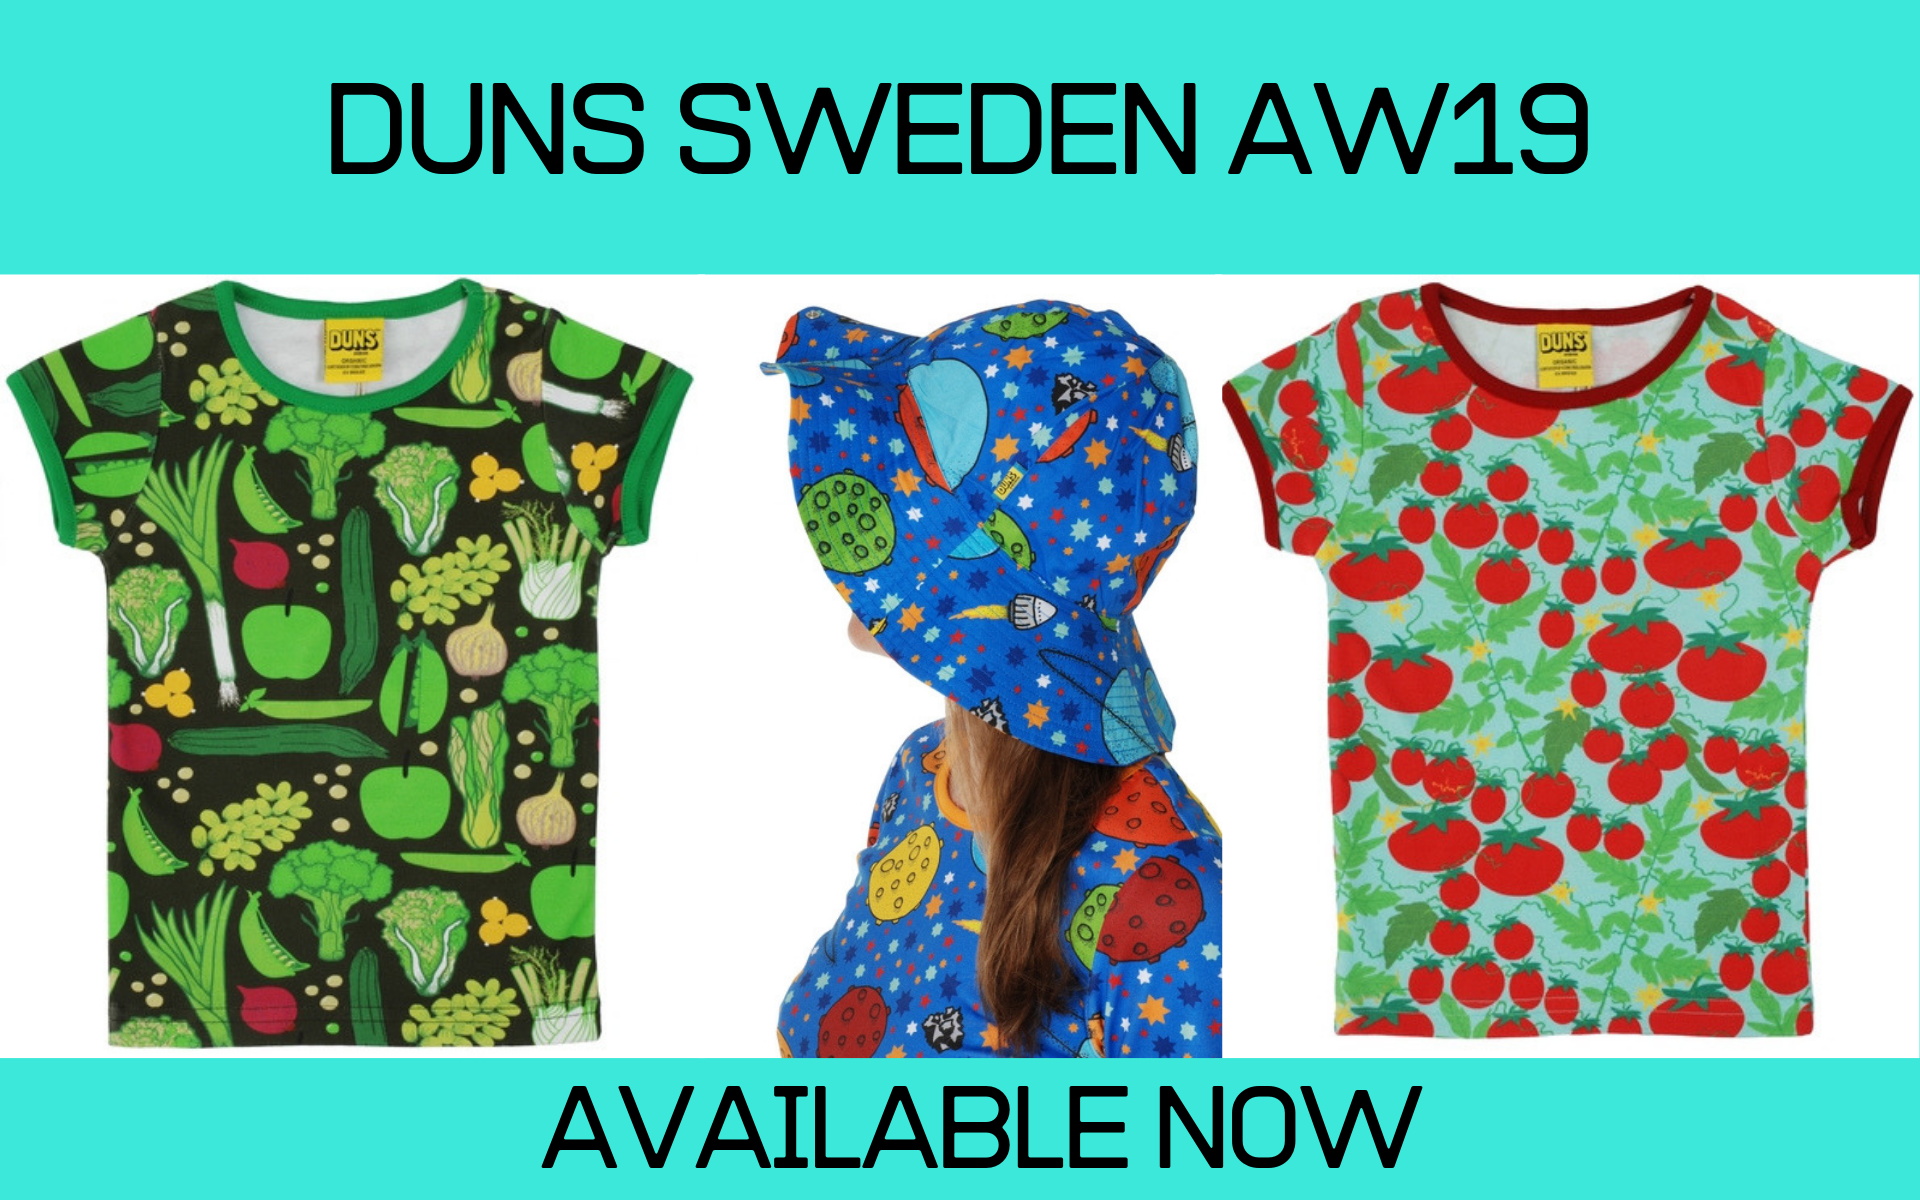 DUNS Sweden buy online at Scandi Down Under Australia